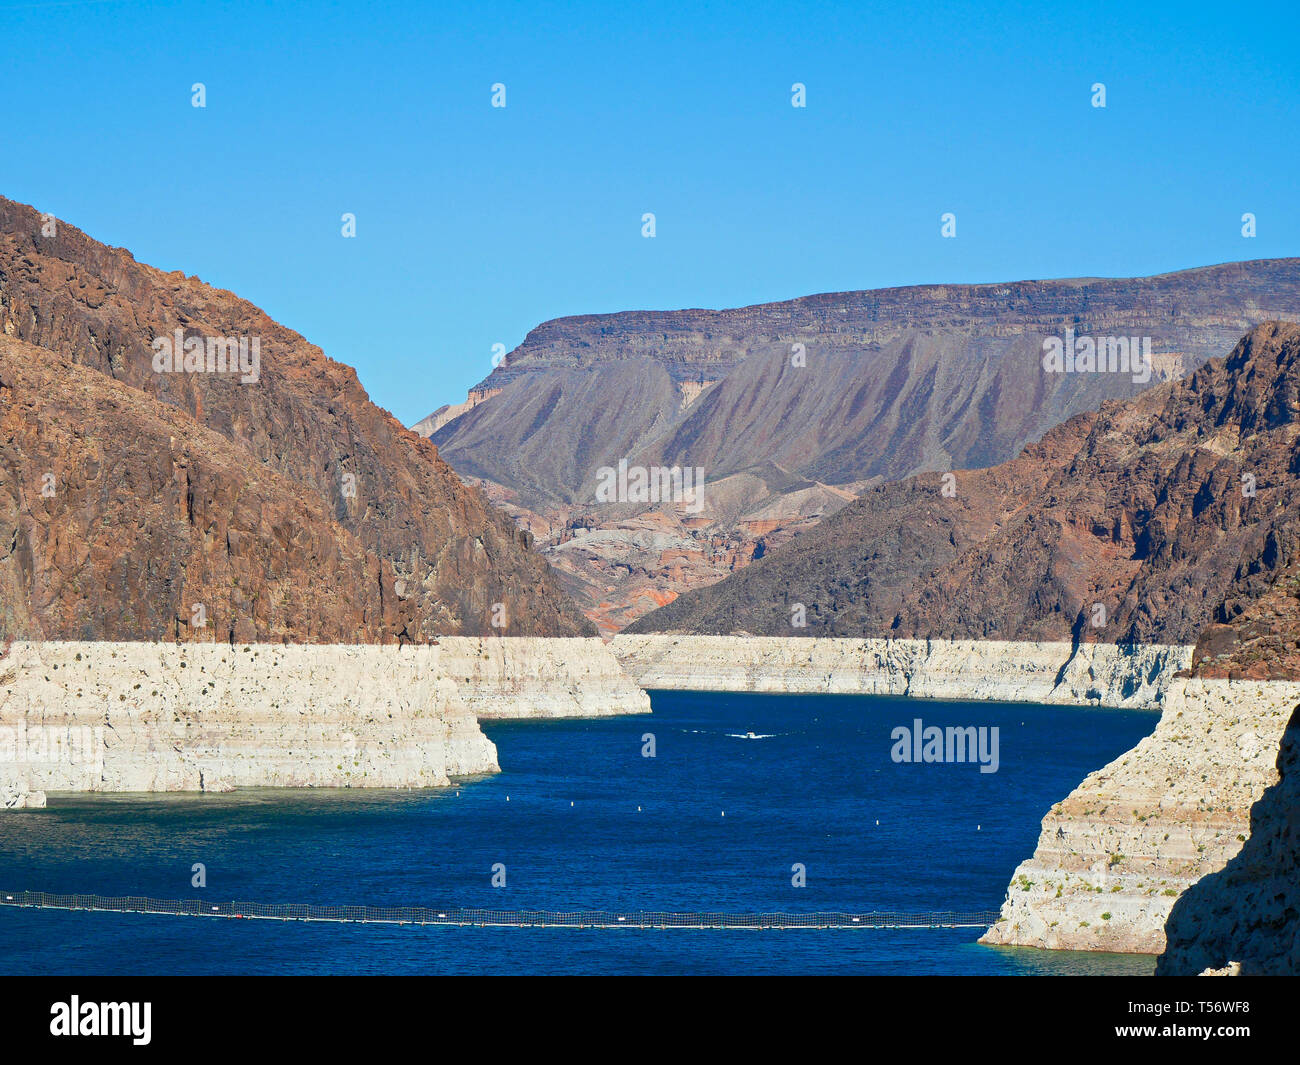 Low water line of Colorado River at Hoover Dam showing the extent of water loss or drought, Arizona and Nevada Stock Photo